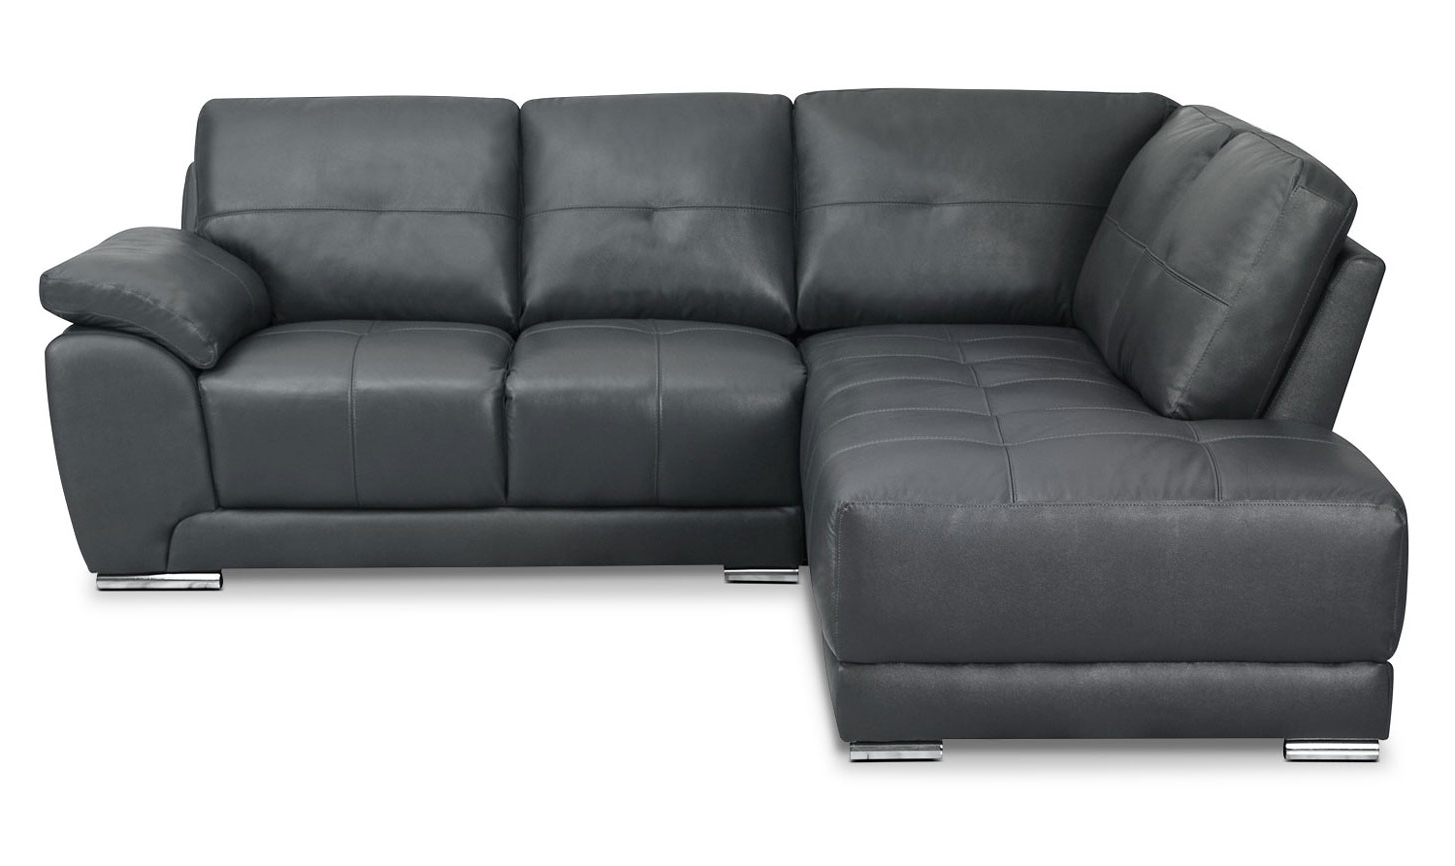 Trendy Sectional Sofa: Ultimate Gallery Of The Brick Sectional Sofa Bed Intended For The Brick Sectional Sofas (View 9 of 20)